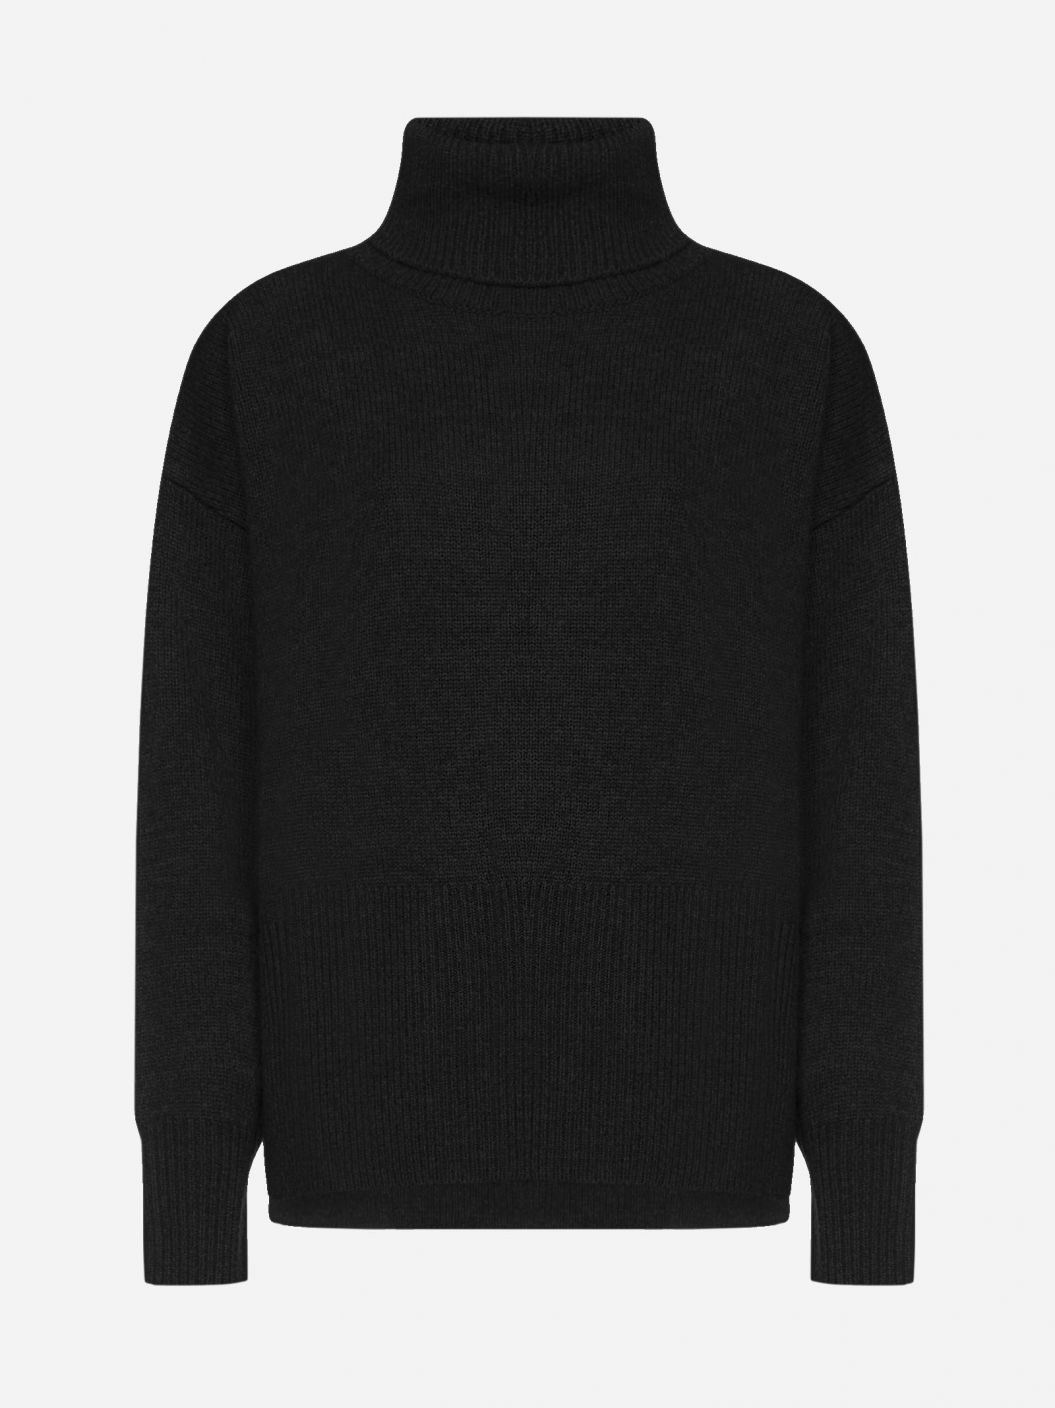 Like wool and cashmere turtleneck